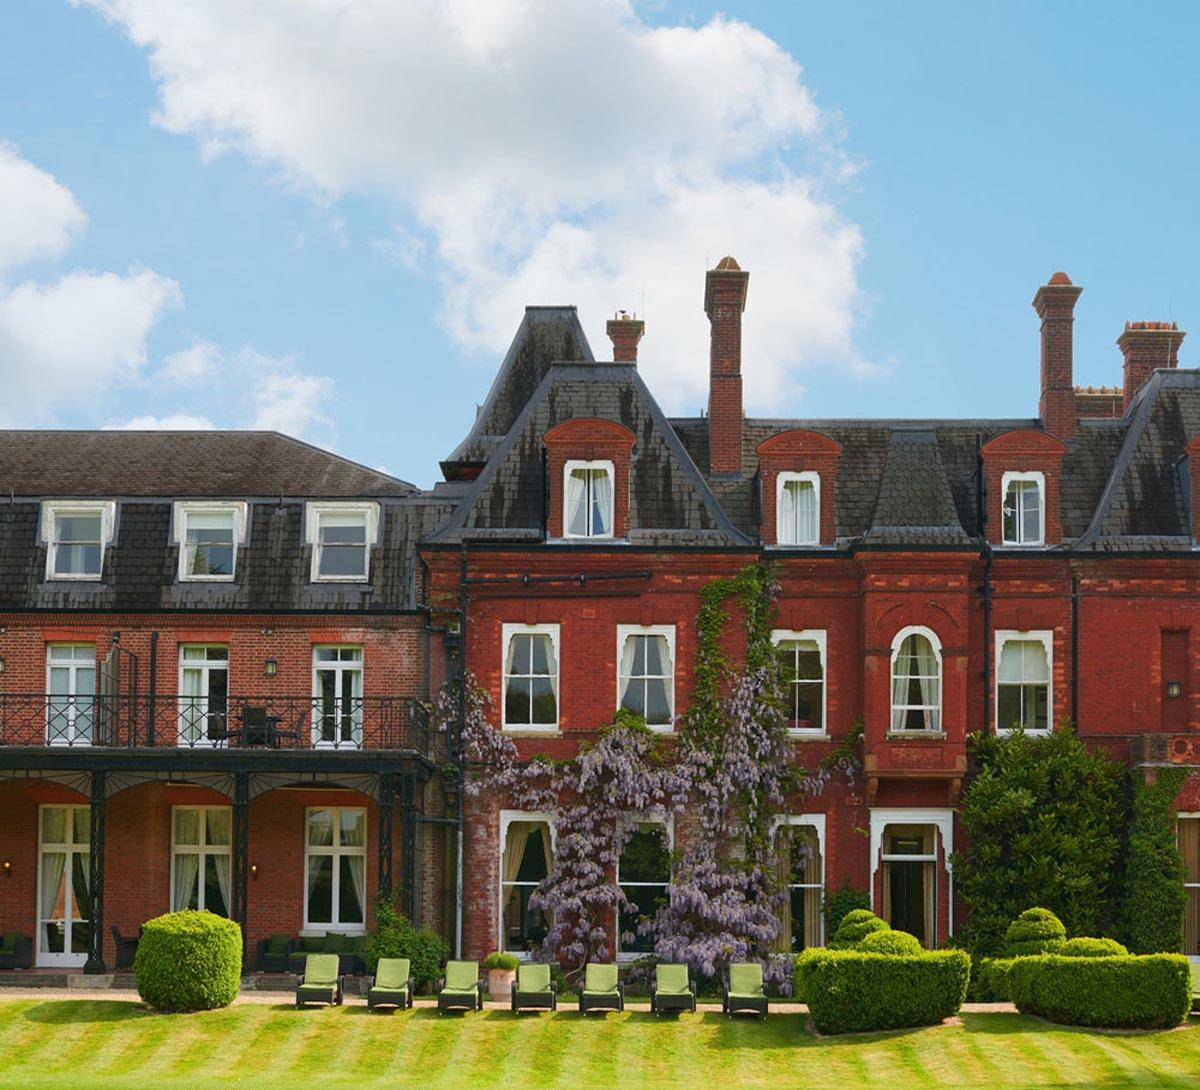 The operator will no longer face legal action, after the council and the company came to an agreement / Champneys